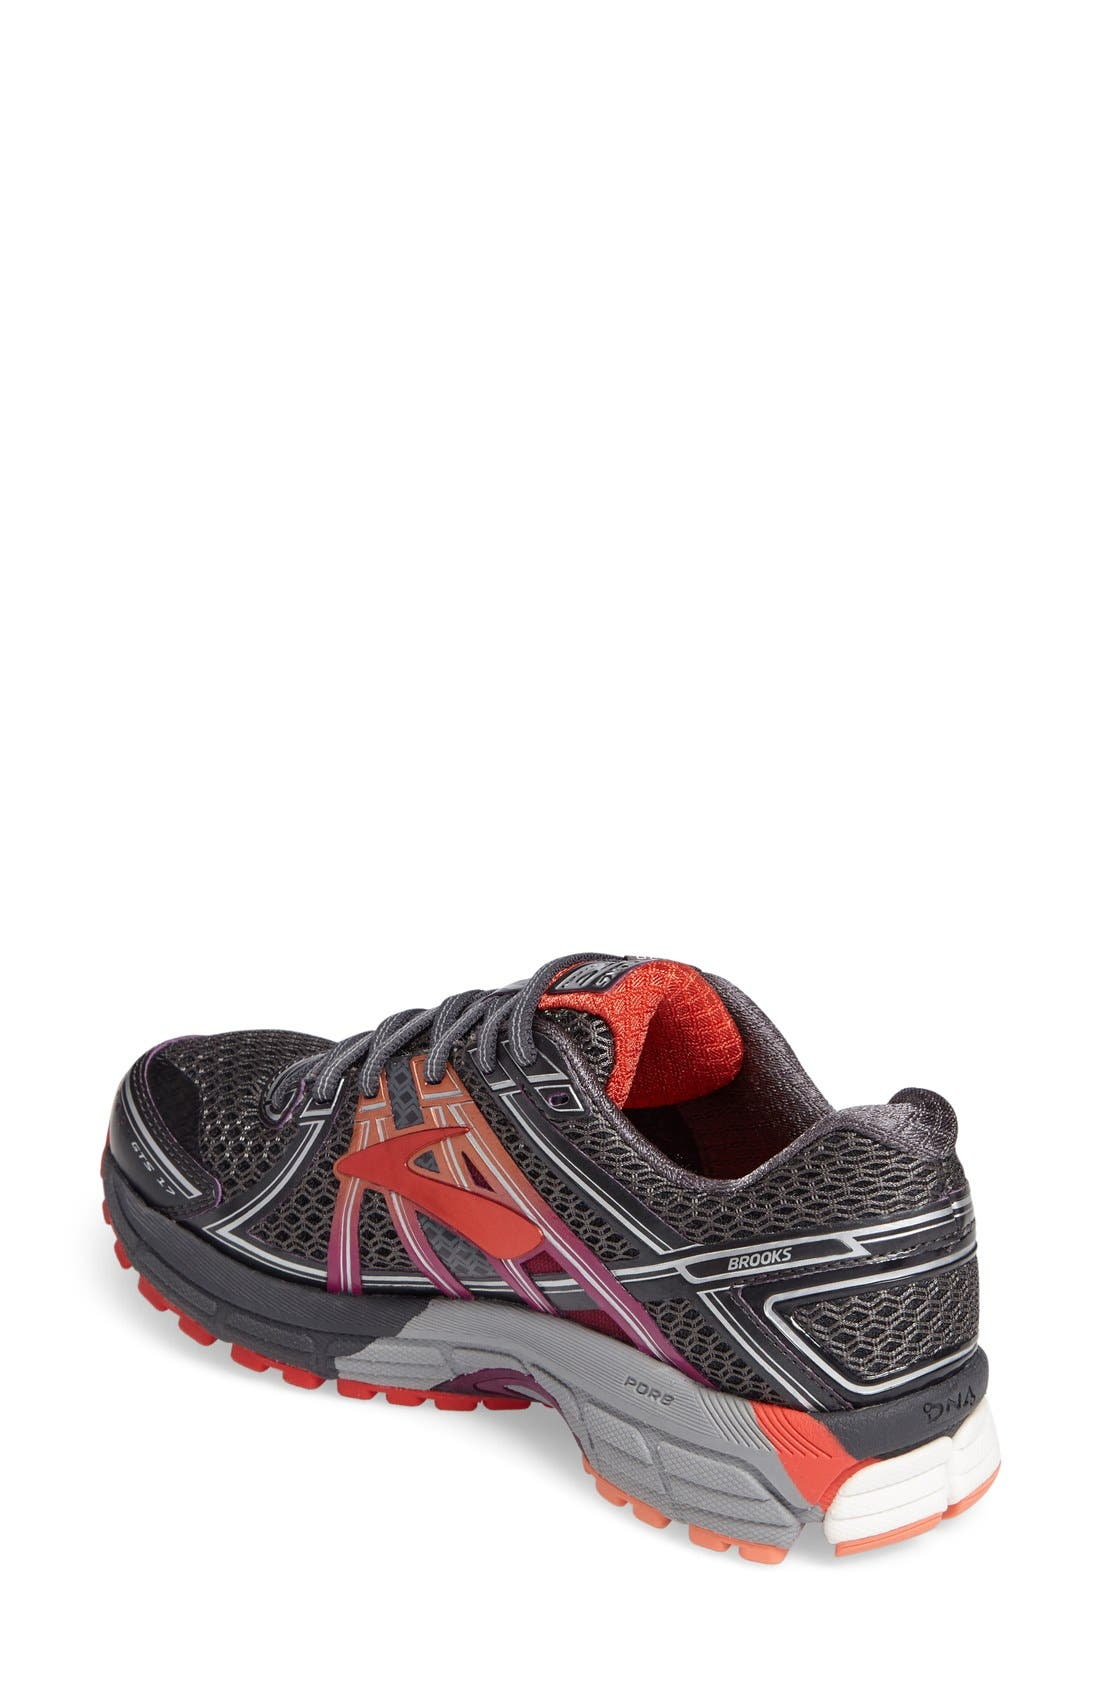 Adrenaline GTS 17 Running Shoe,                             Alternate thumbnail 33, color,